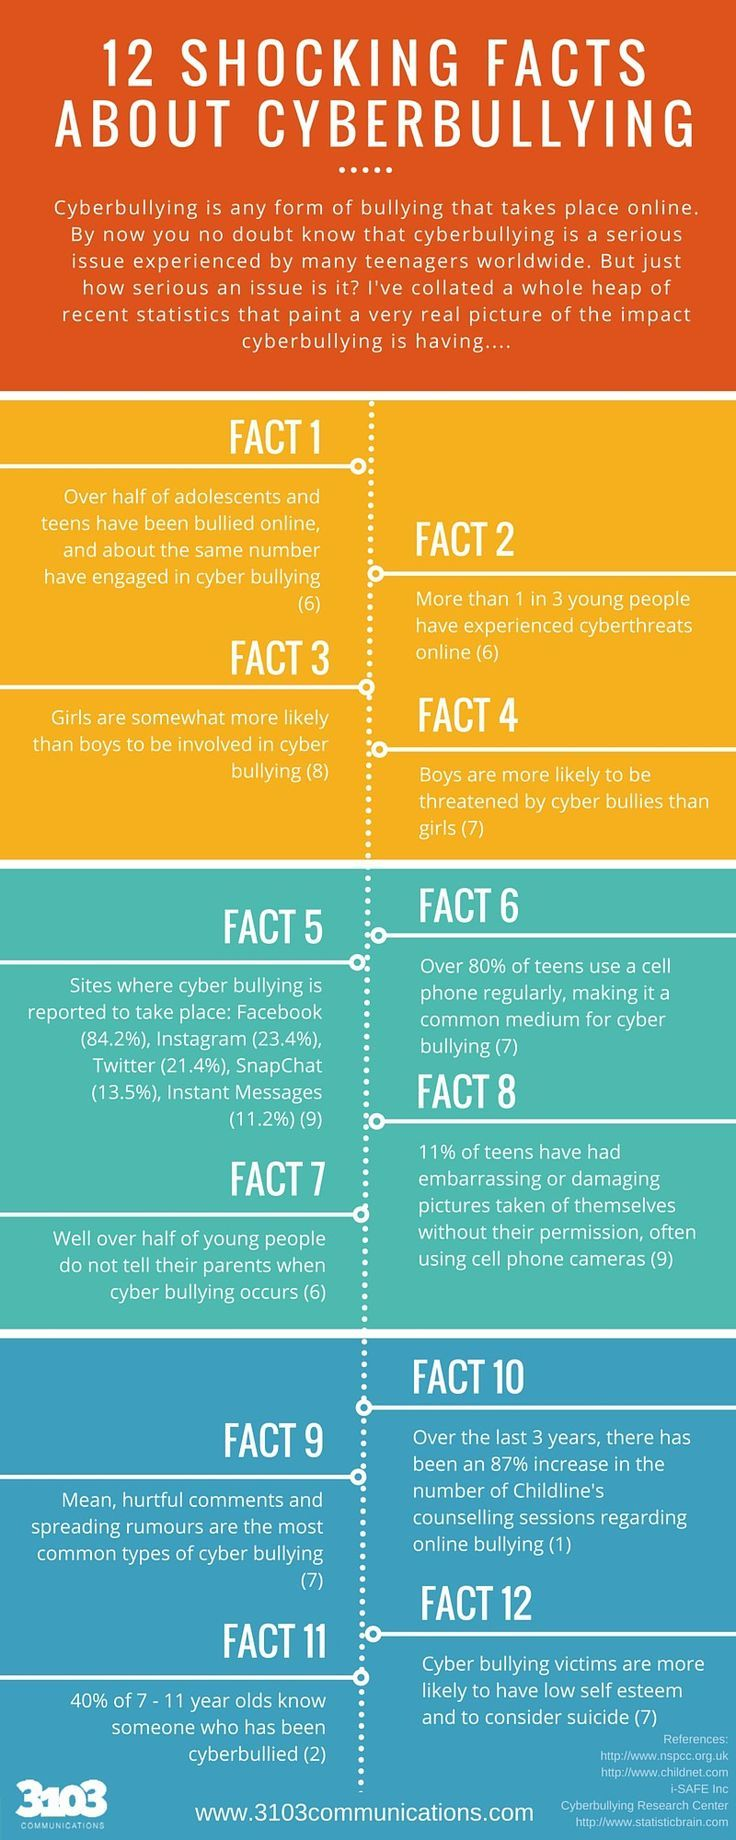 12 SHOCKING FACTS ABOUT CYBERBULLYING INFOGRAPHIC